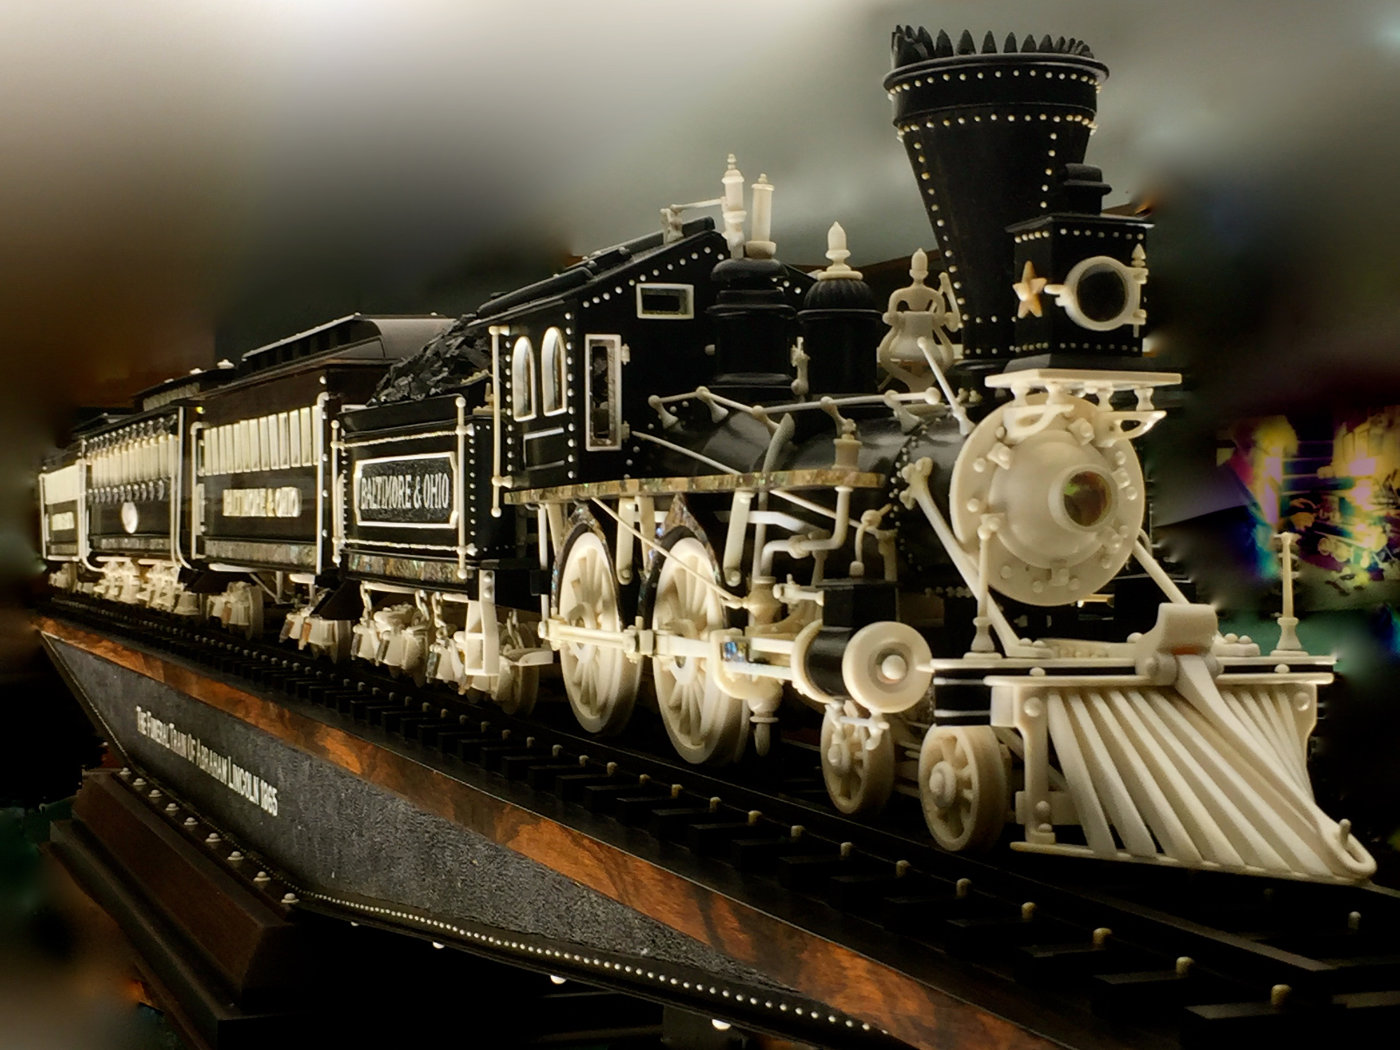 A fancy and intricate model train at Warther's Train Museum.